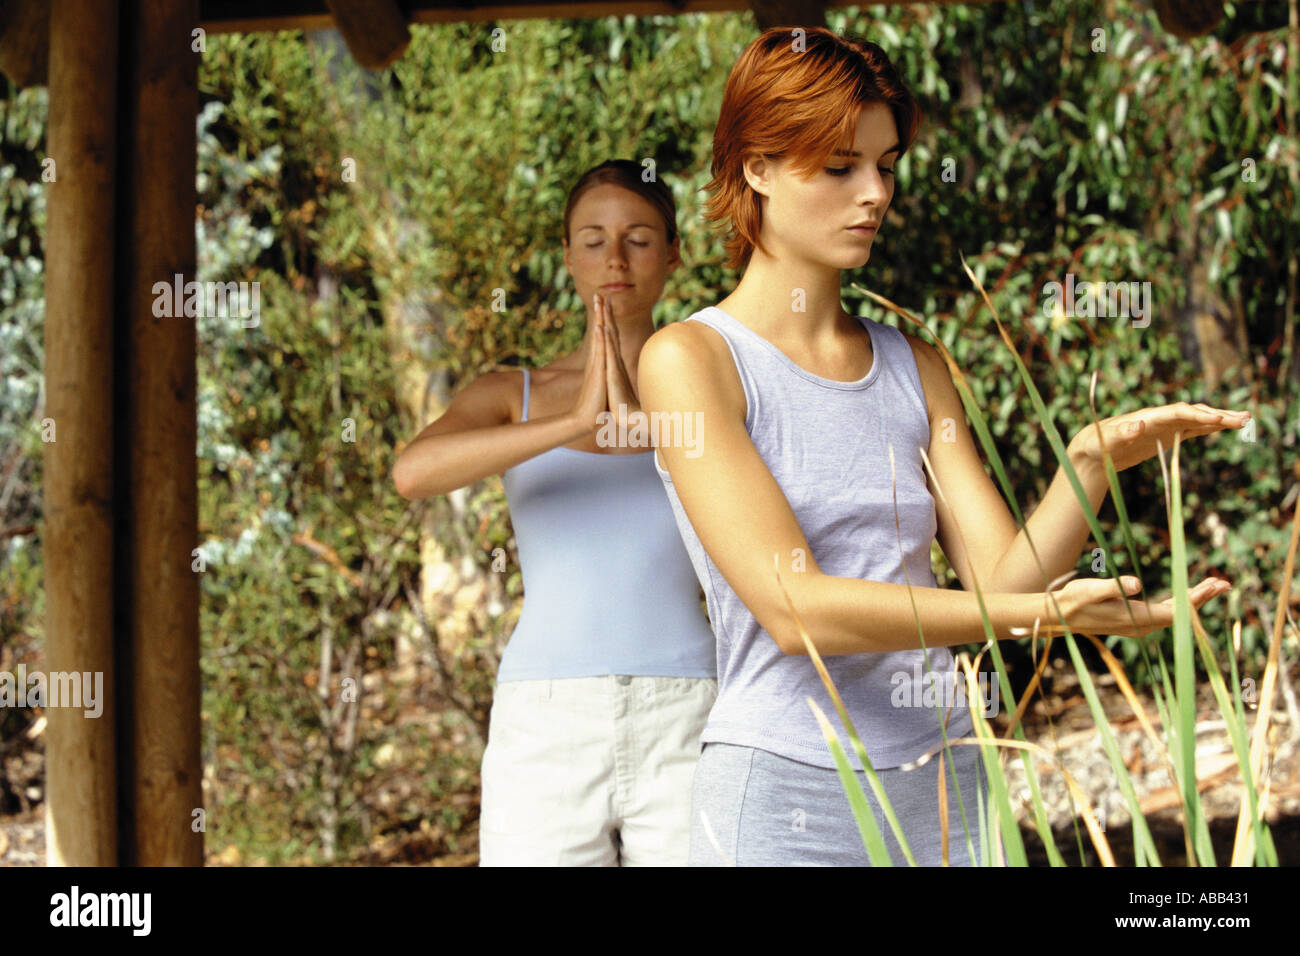 Two women practising yoga and tai chi - Stock Image